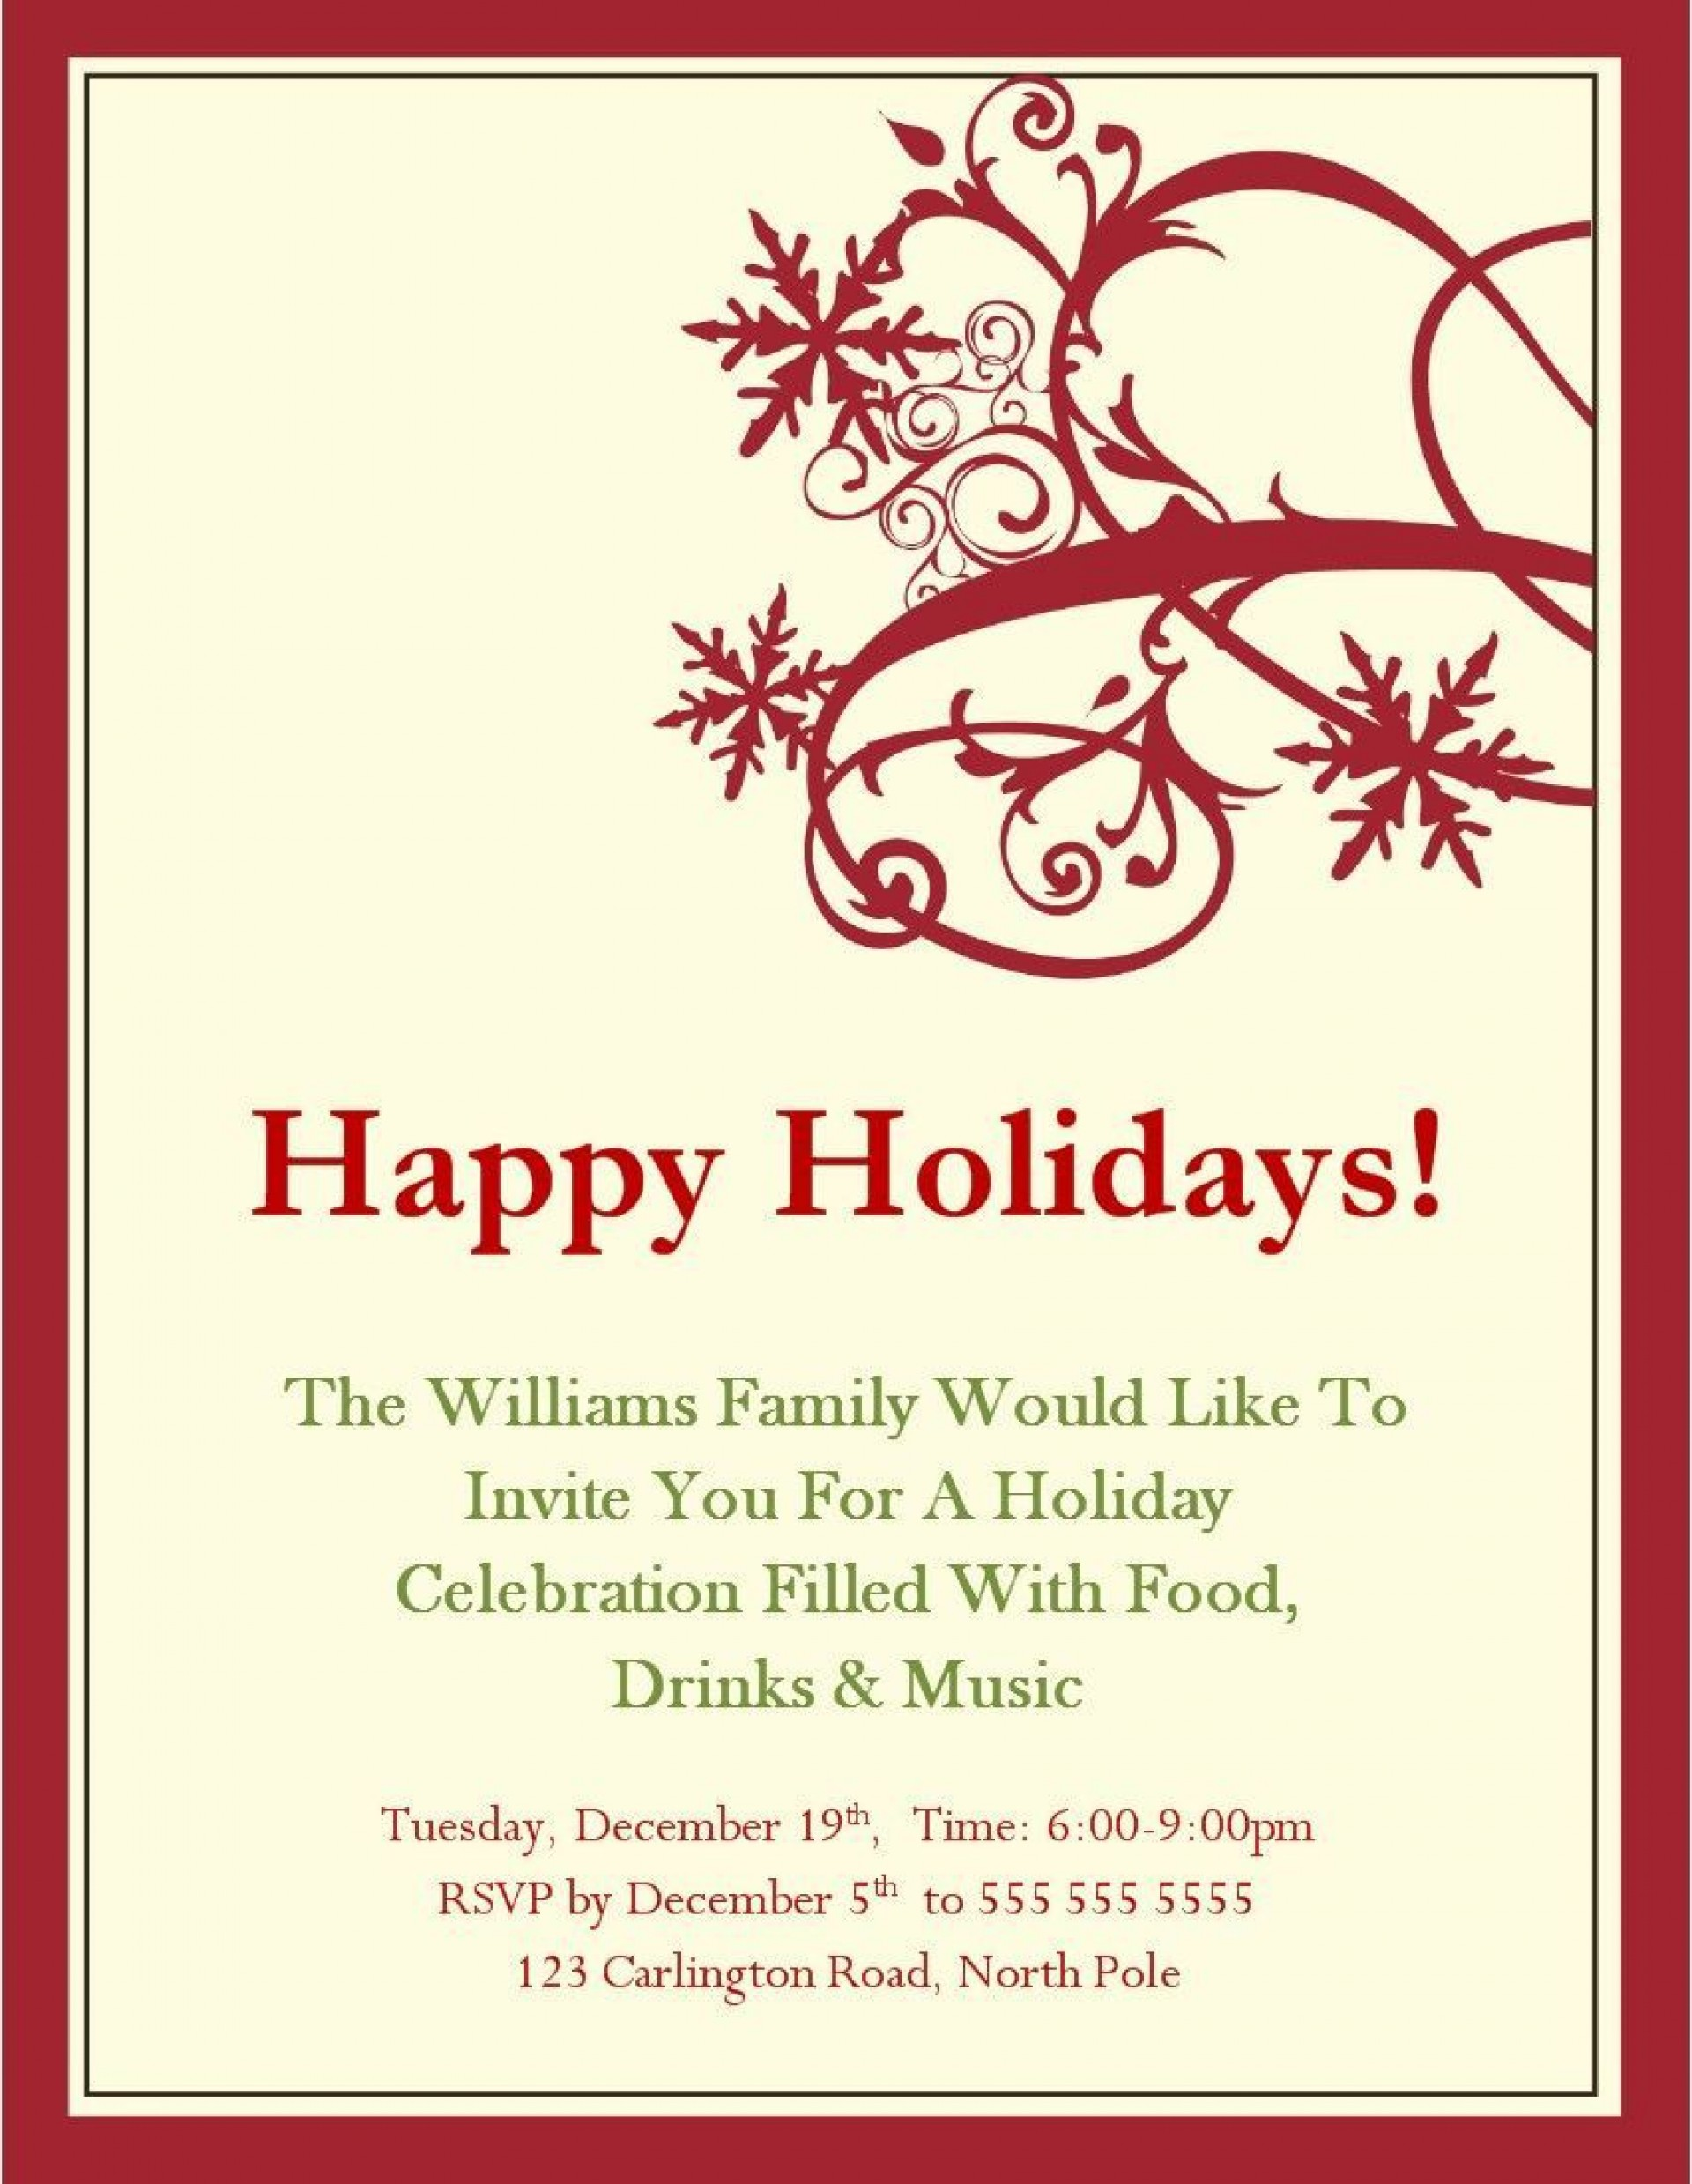 004 Sensational Free Holiday Party Invitation Template For Word Inspiration 1920